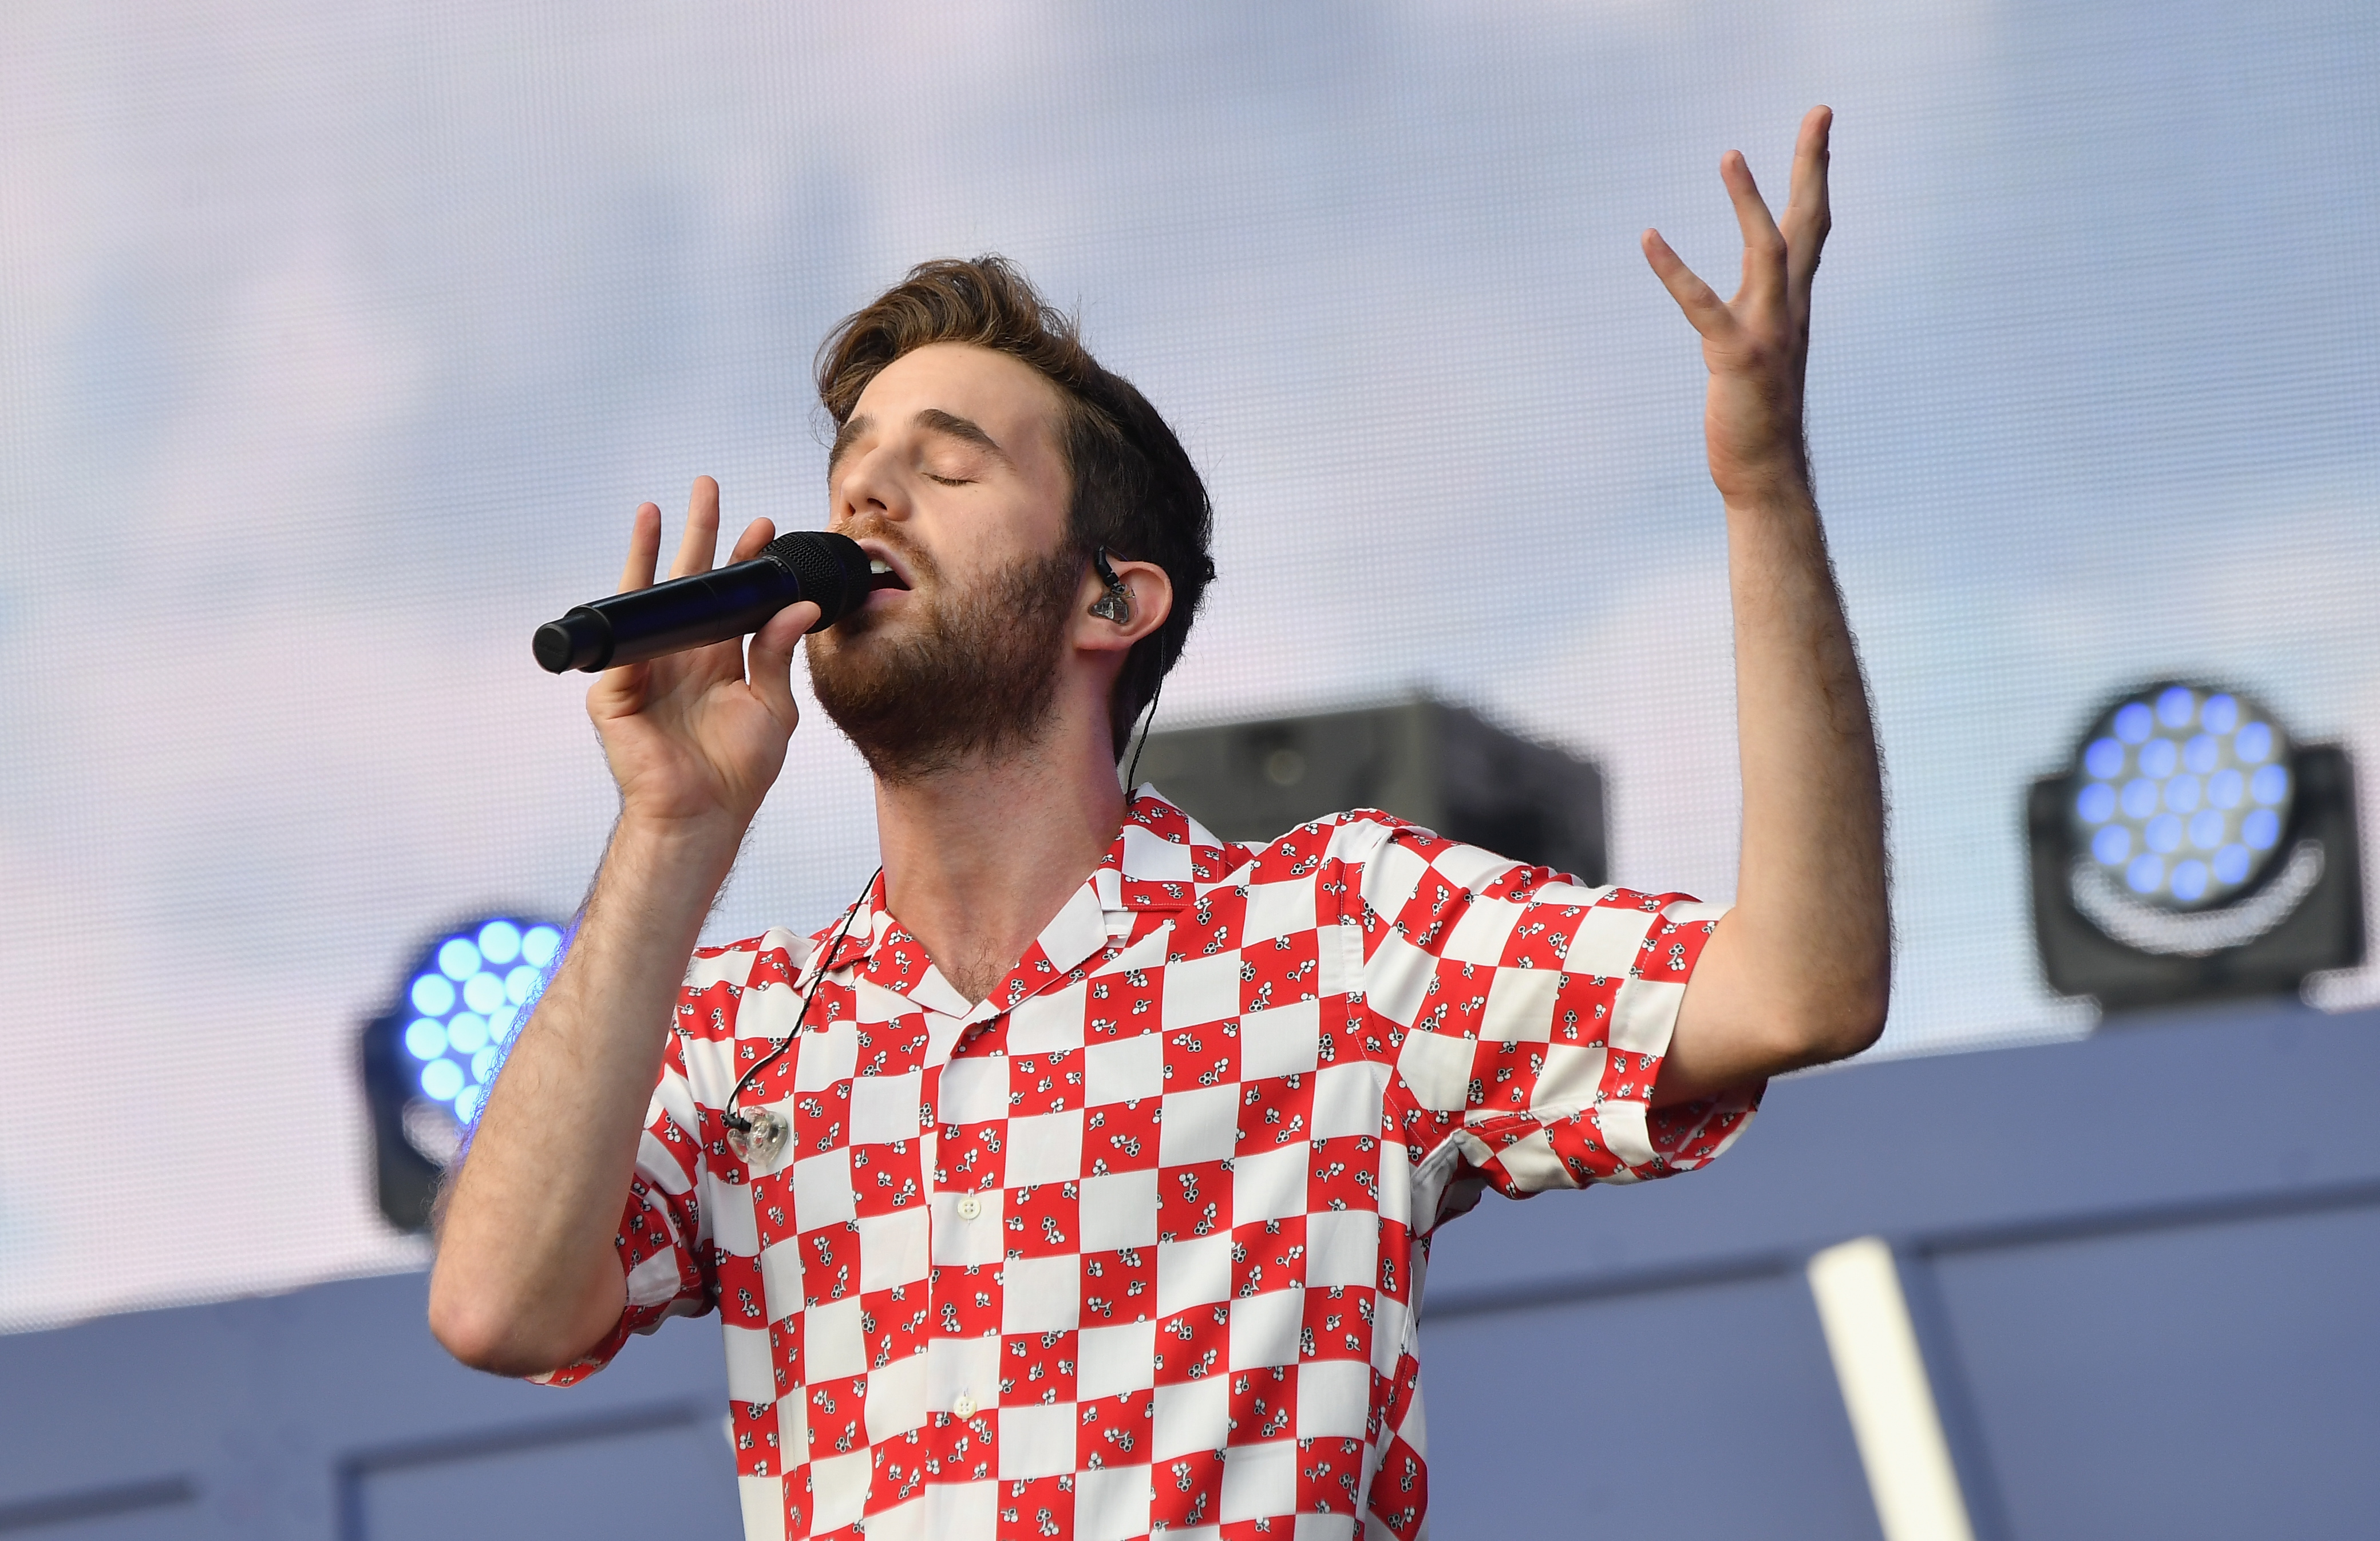 US actor and singer Ben Platt performs onstage at the 2019 Global Citizen Festival: Power The Movement in Central Park in New York on September 28, 2019. (Photo by Angela Weiss / AFP)        (Photo credit should read ANGELA WEISS/AFP/Getty Images)